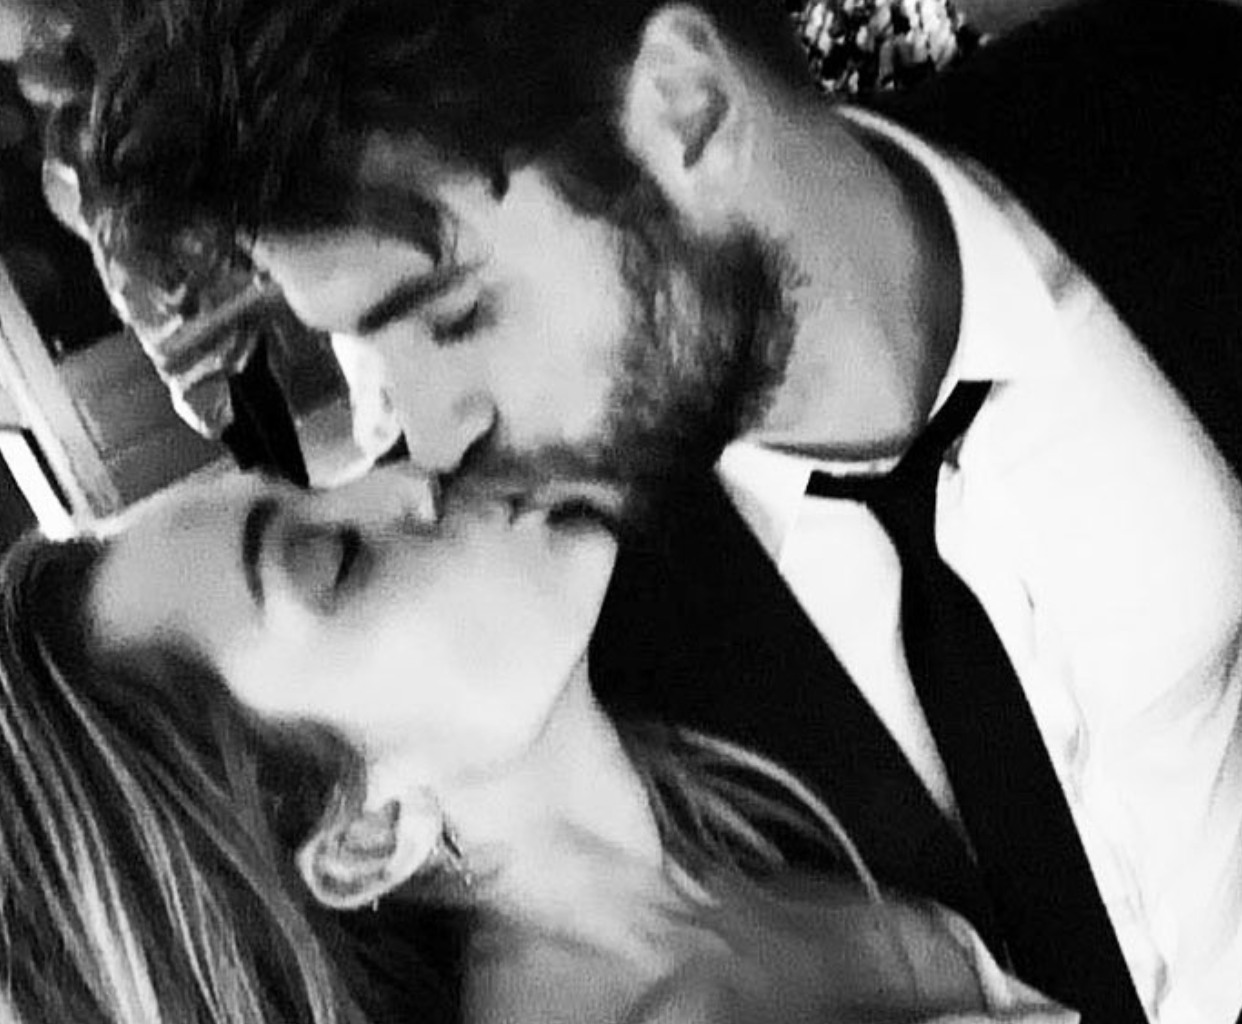 Vegan couple Miley Cyrus and Liam Hemsworth